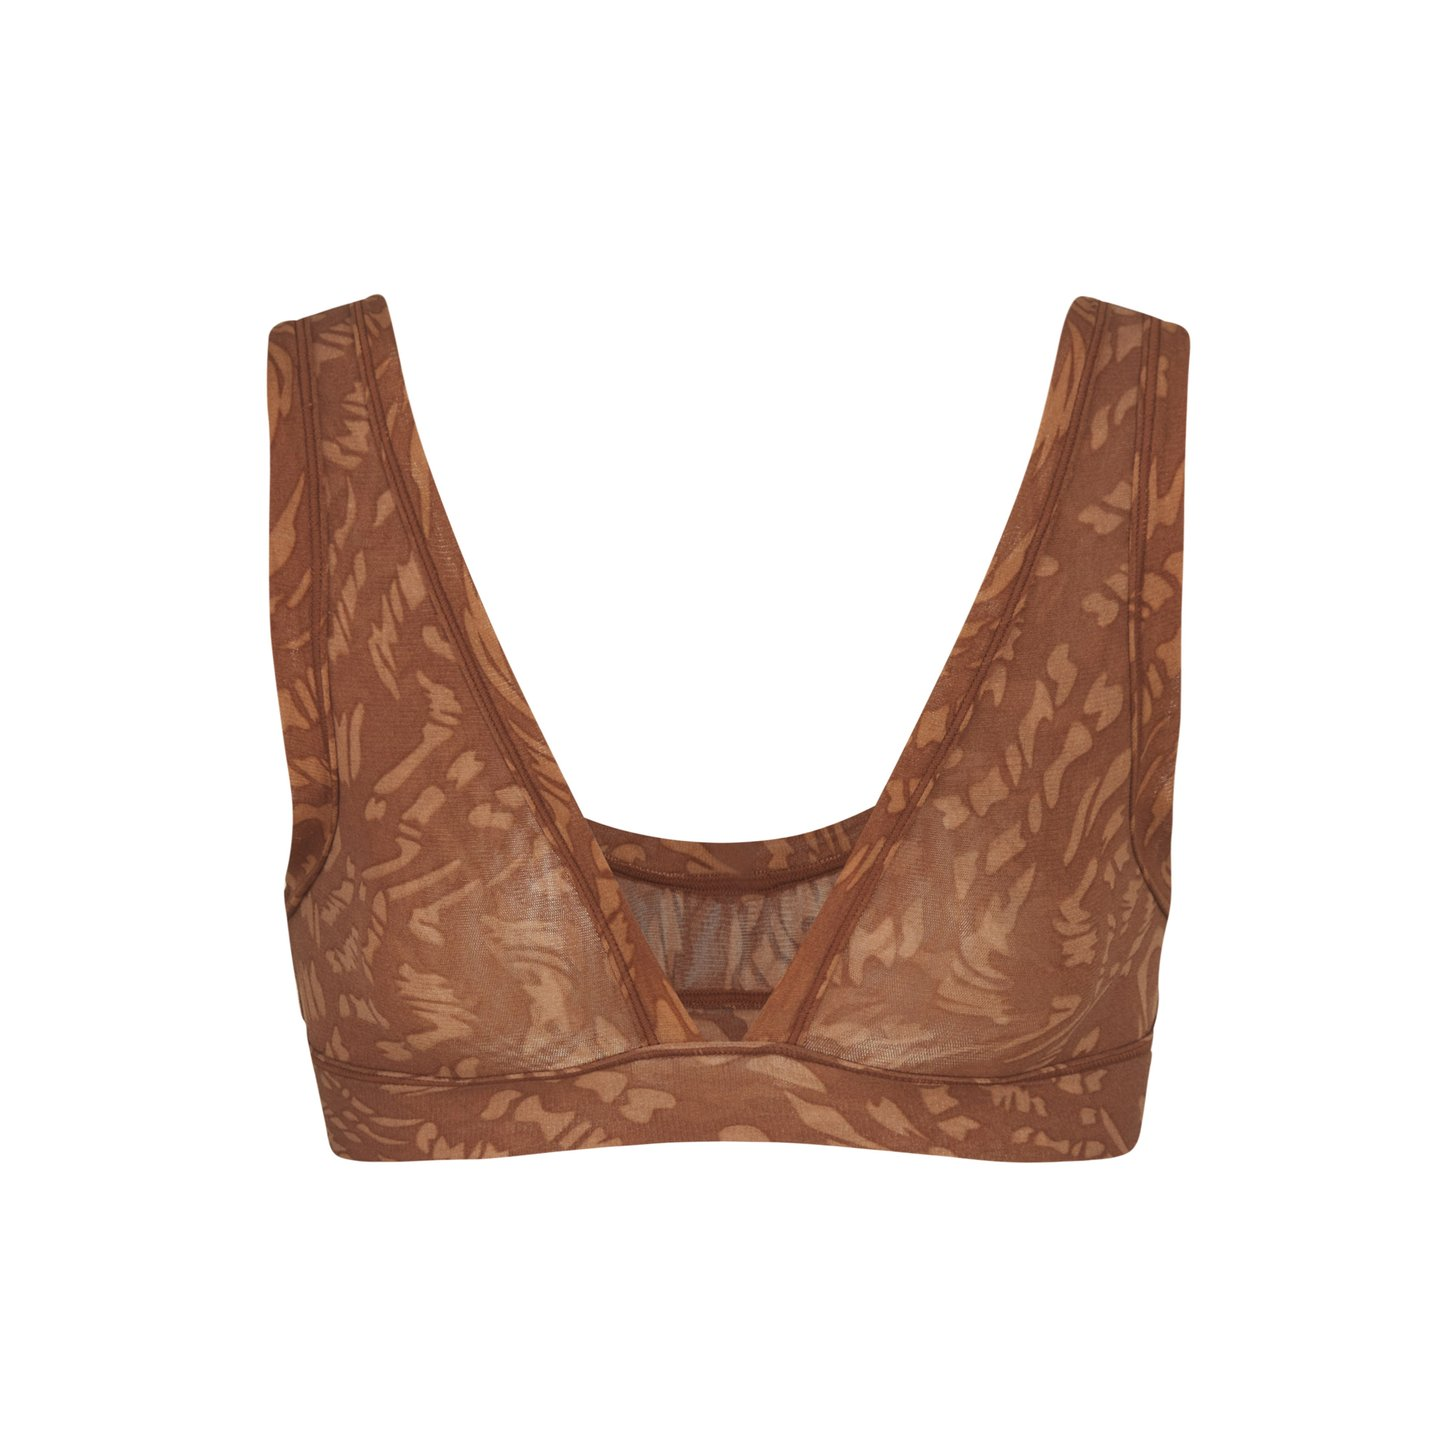 SUMMER MESH TRIANGLE BRALETTE by Skims, available on skims.com for $40 Kim Kardashian Top Exact Product